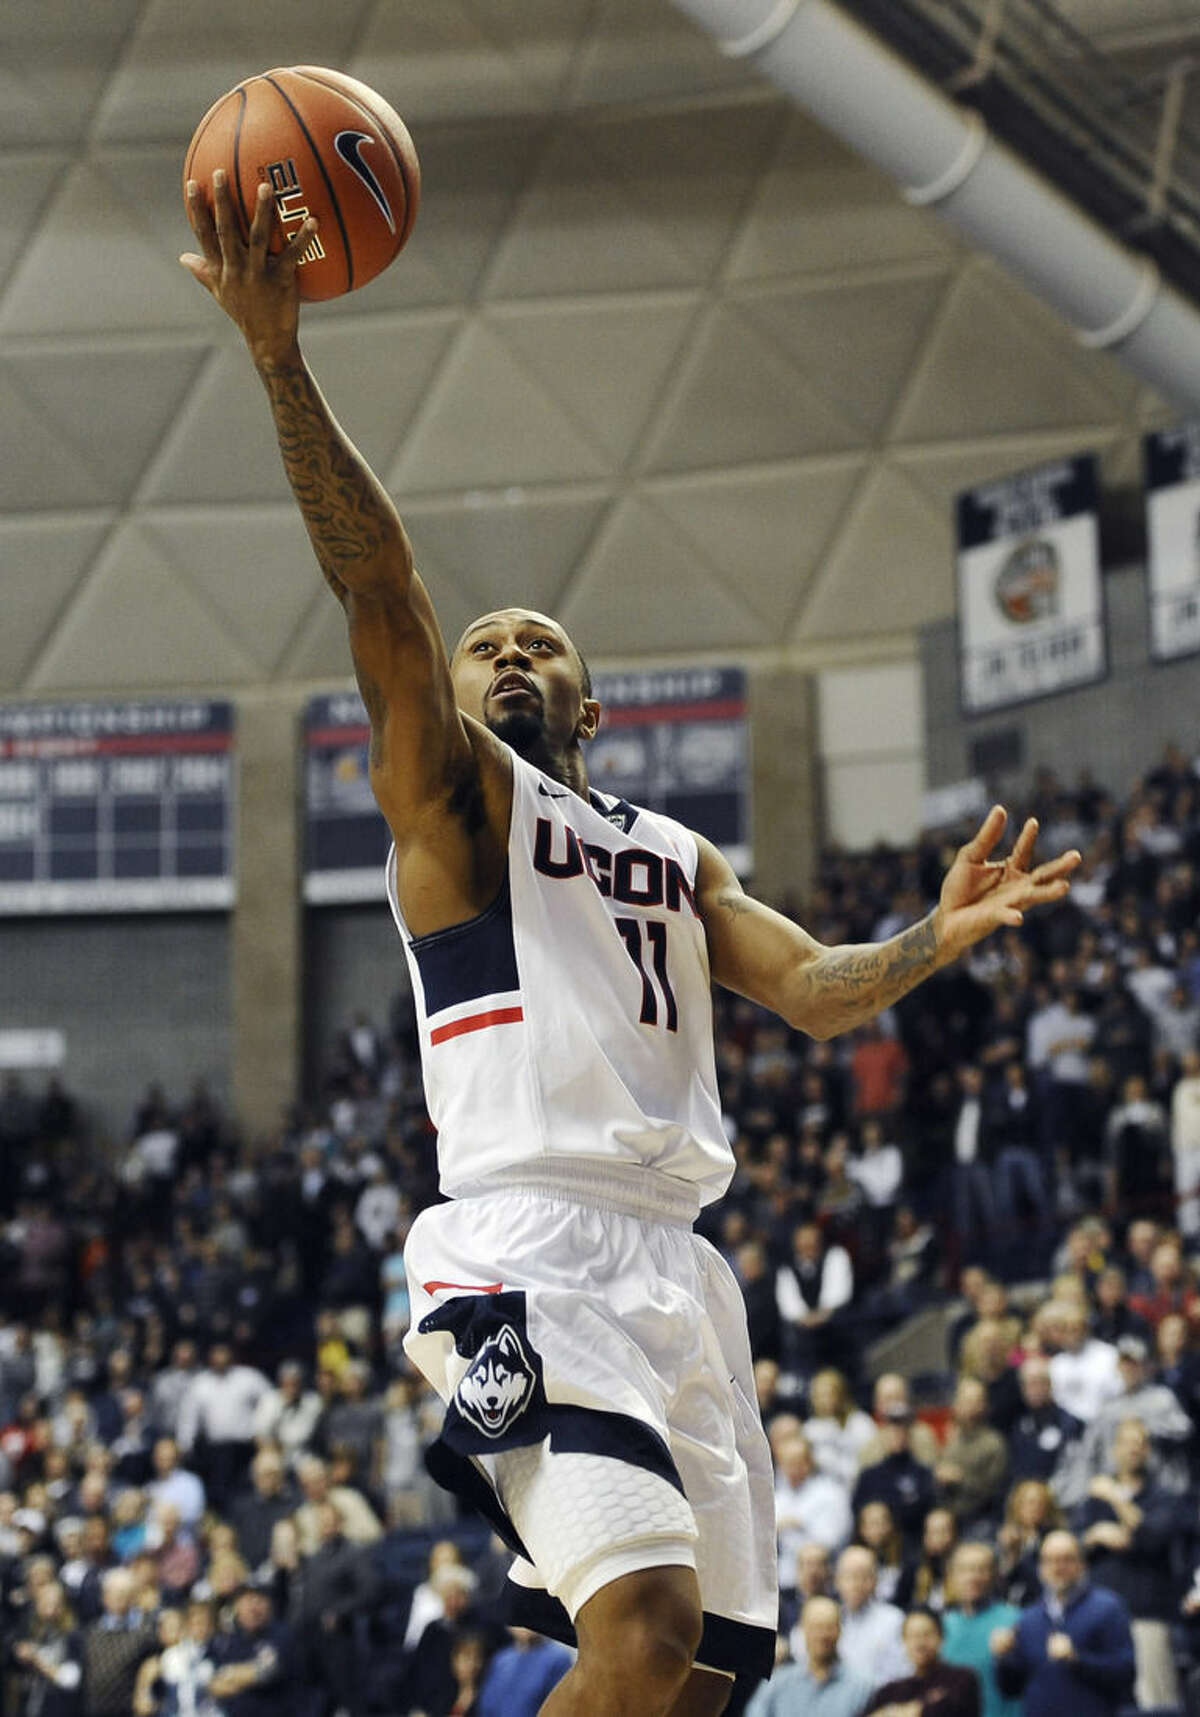 Connecticut's Ryan Boatright goes up for a shot during the first half of an NCAA college basketball game against UCF, Thursday, Jan. 22, 2015, in Storrs, Conn. (AP Photo/Jessica Hill)